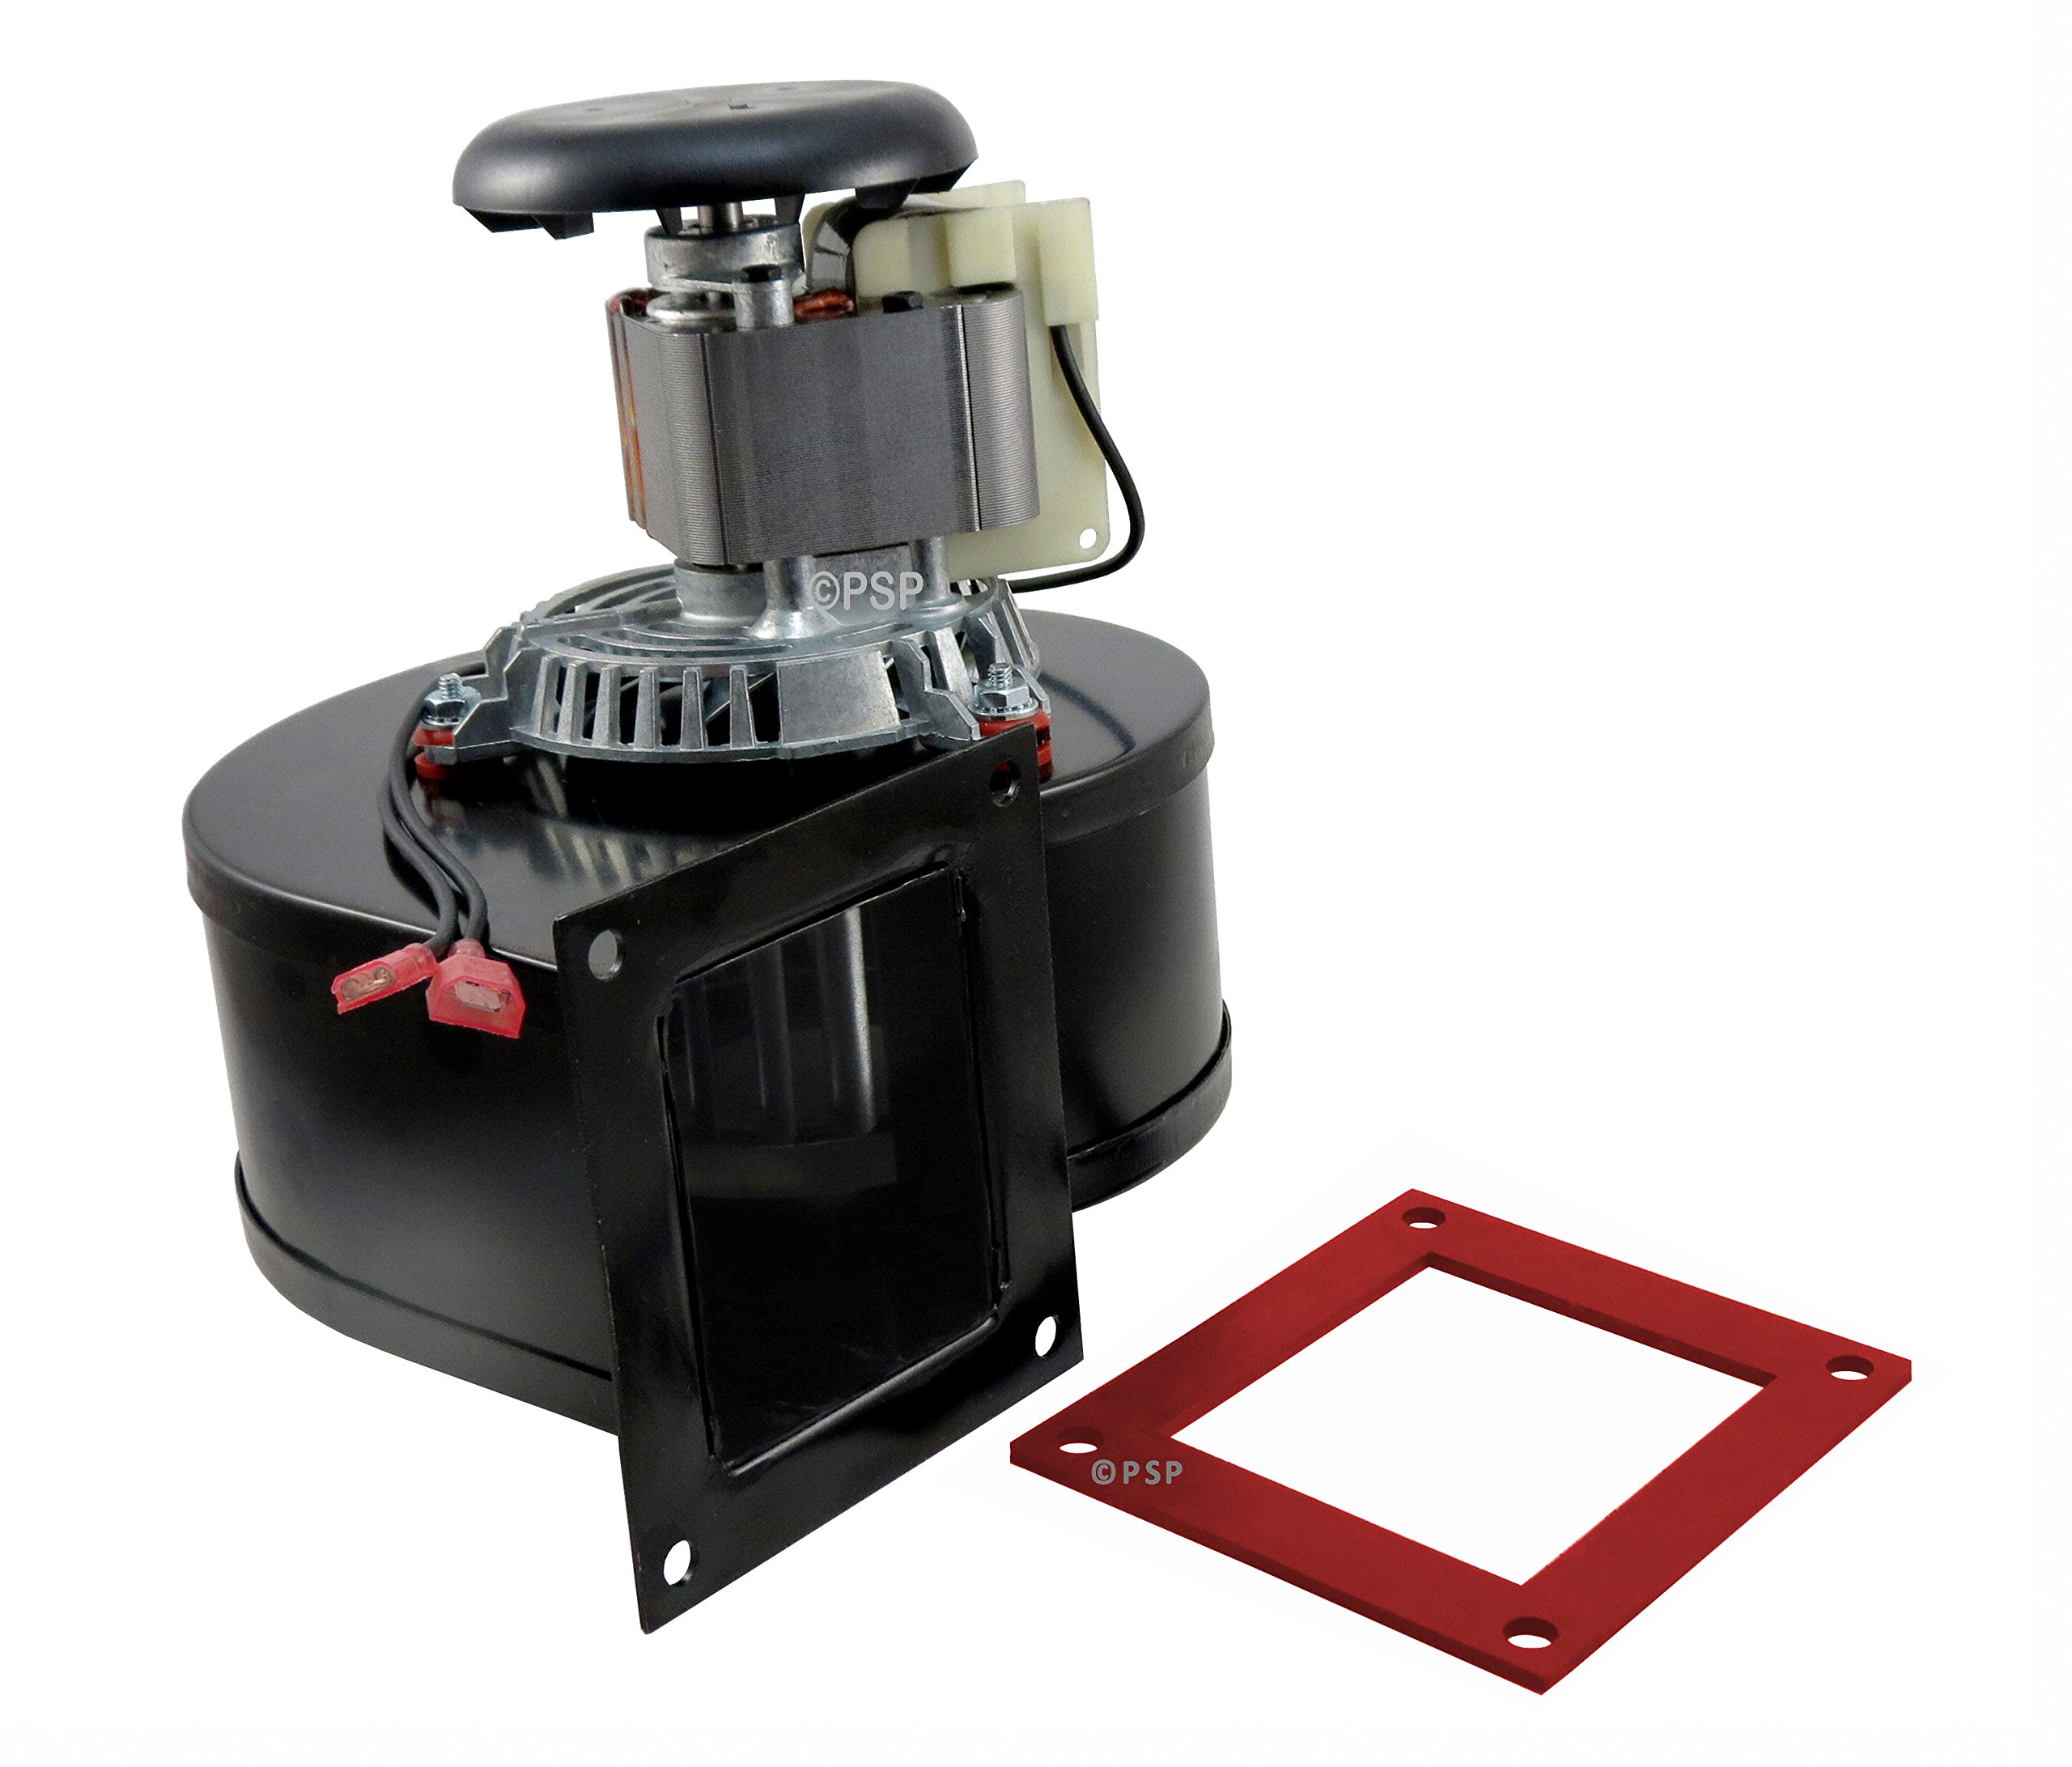 Breckwell Convection Fan Room Air Blower, A-E-033, A-E-033A, C-E-033 for Pellet Stoves